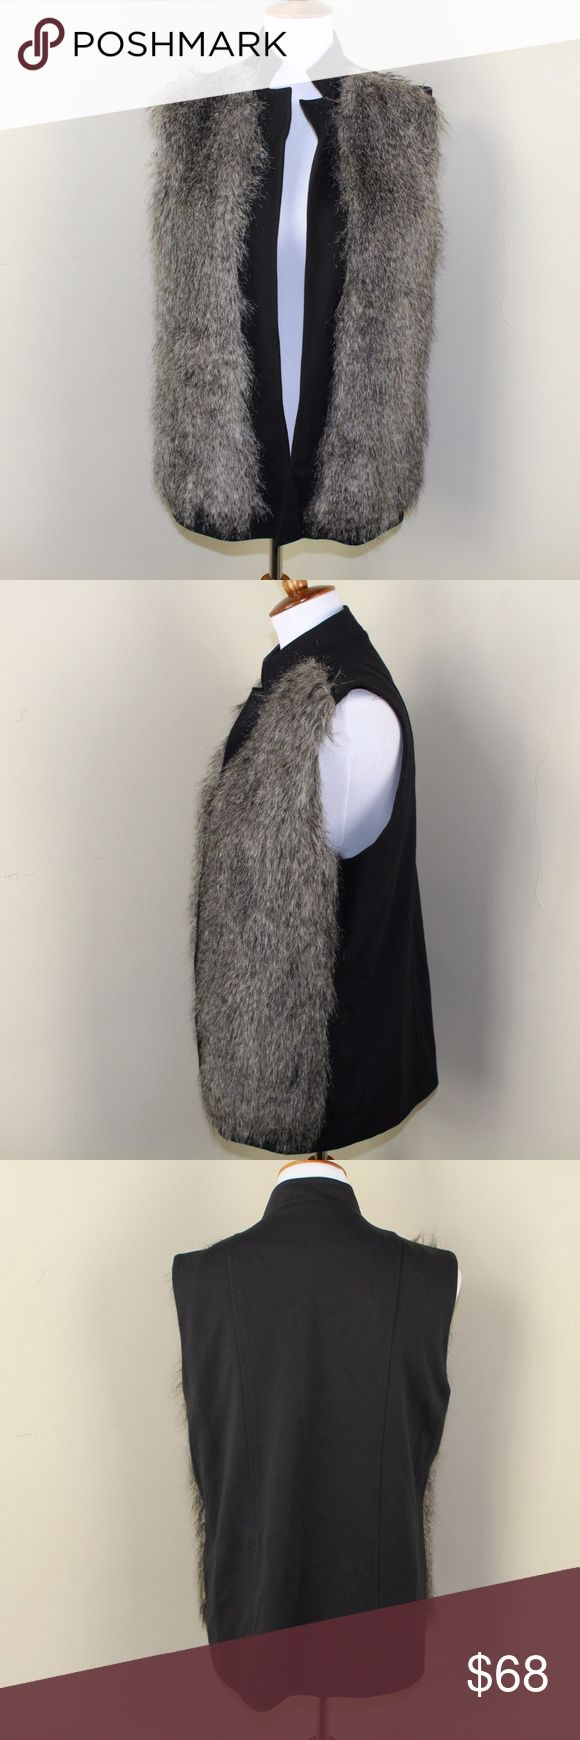 French Connection Black / Faux Fur Vest Excellent, gently loved condition. No holes, stains, flaws or signs of wear.  My bundle discount is 15% off 2+ Feel free to ask any questions, additional measurements or pictures.  Please submit any offers through the offer button. French Connection Jackets & Coats Vests